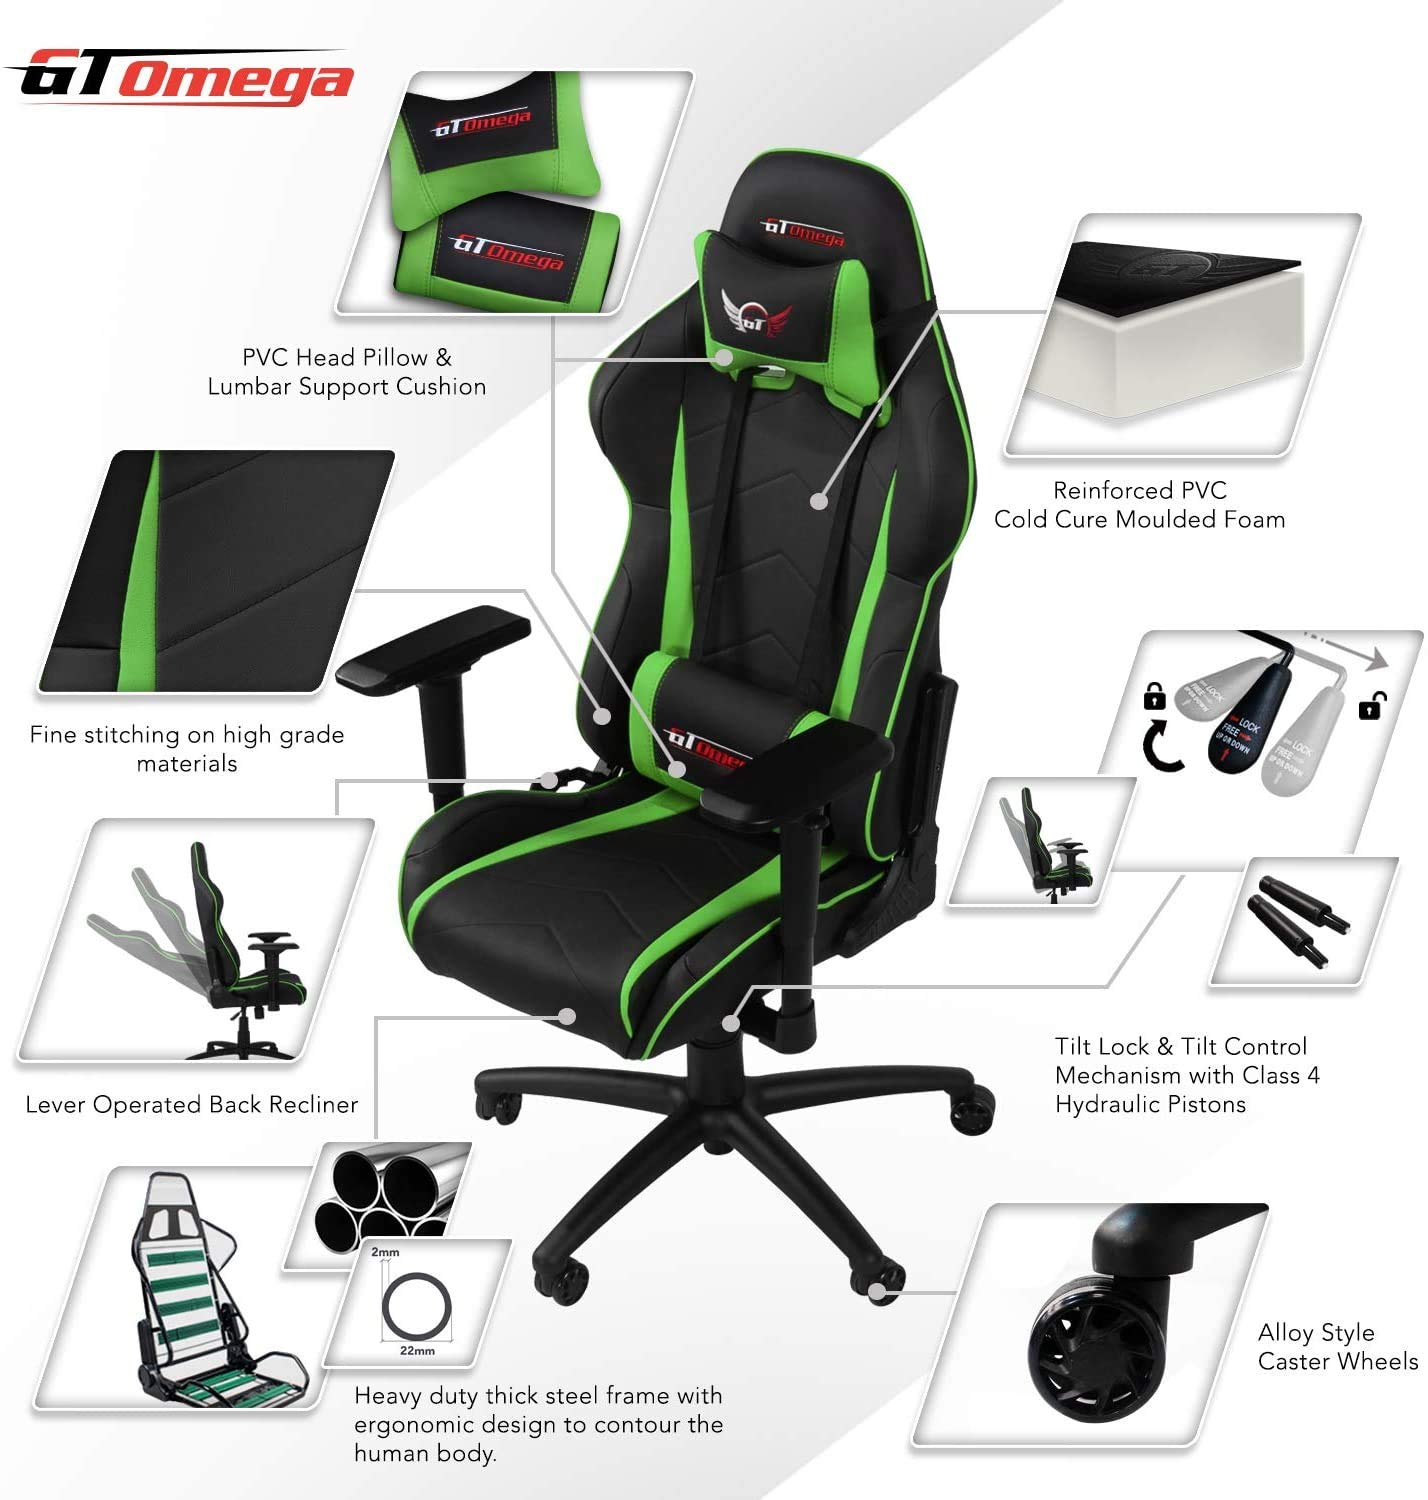 Amazon Com Gt Omega Pro Racing Gaming Chair With Ergonomic Lumbar Support Pvc Leather Reclining High Back Home Office Chair With Swivel Pc Gaming Desk Chair For Ultimate Racing Experience